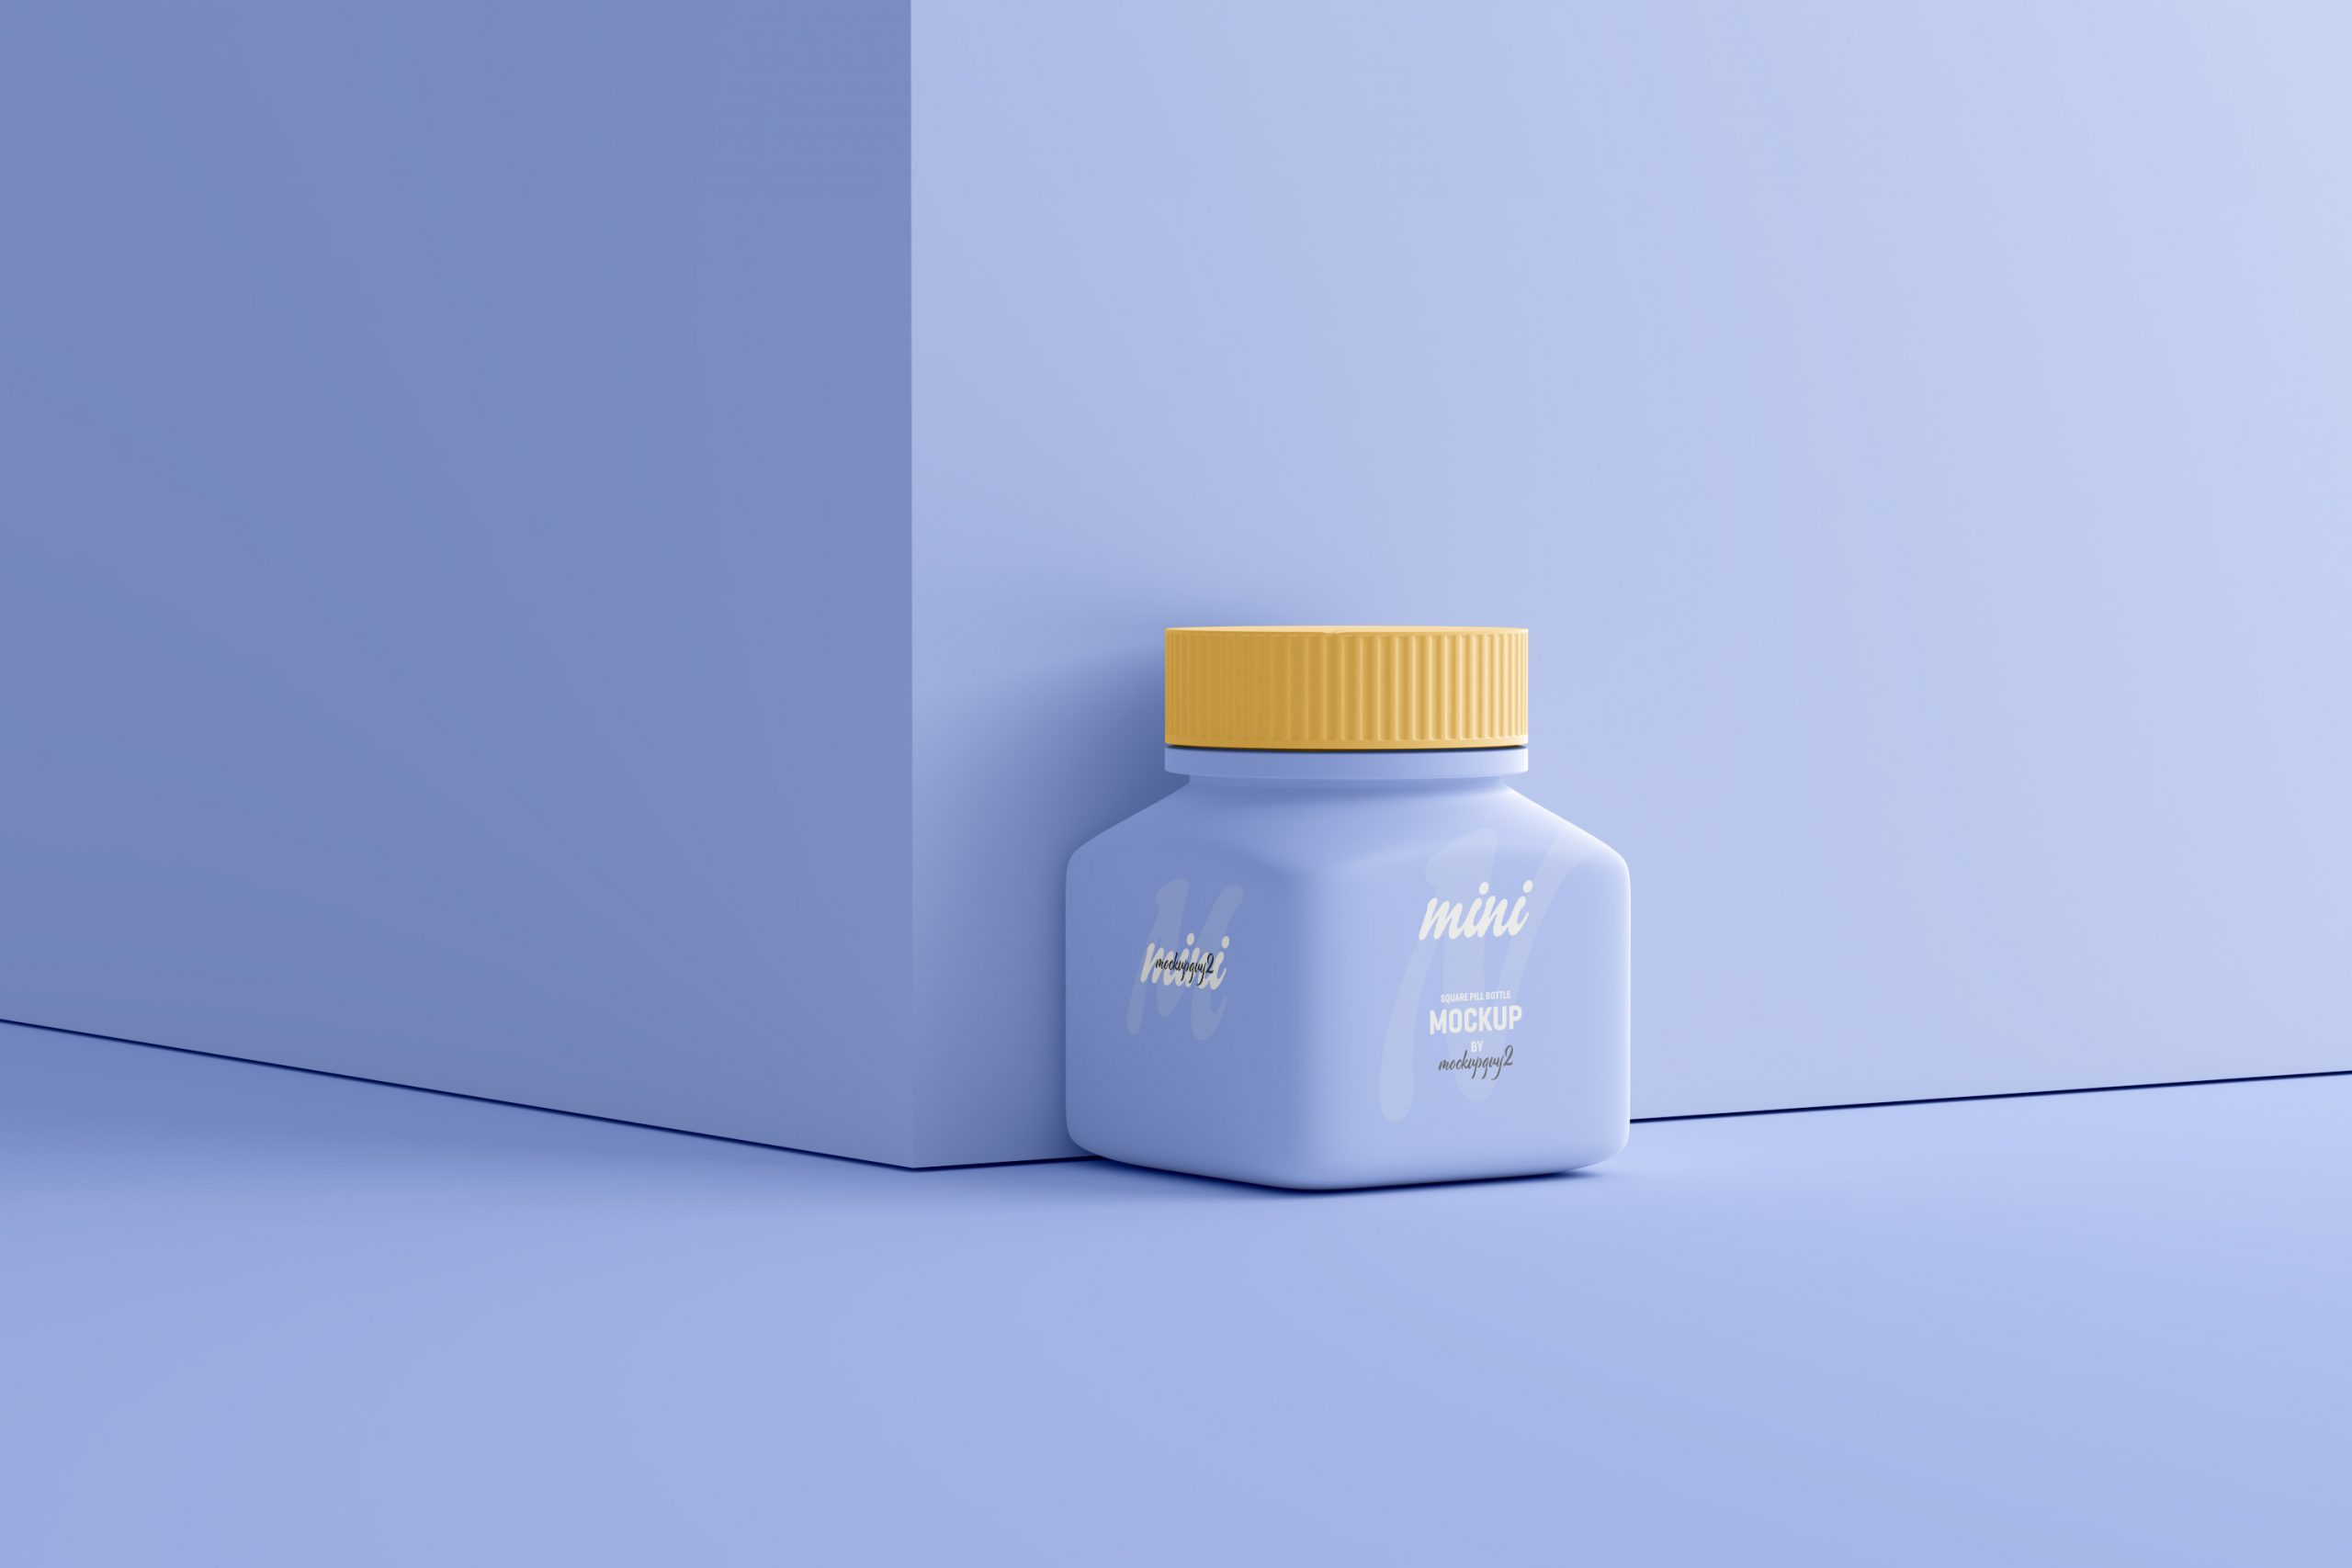 Small Square Pill Bottle Mockup